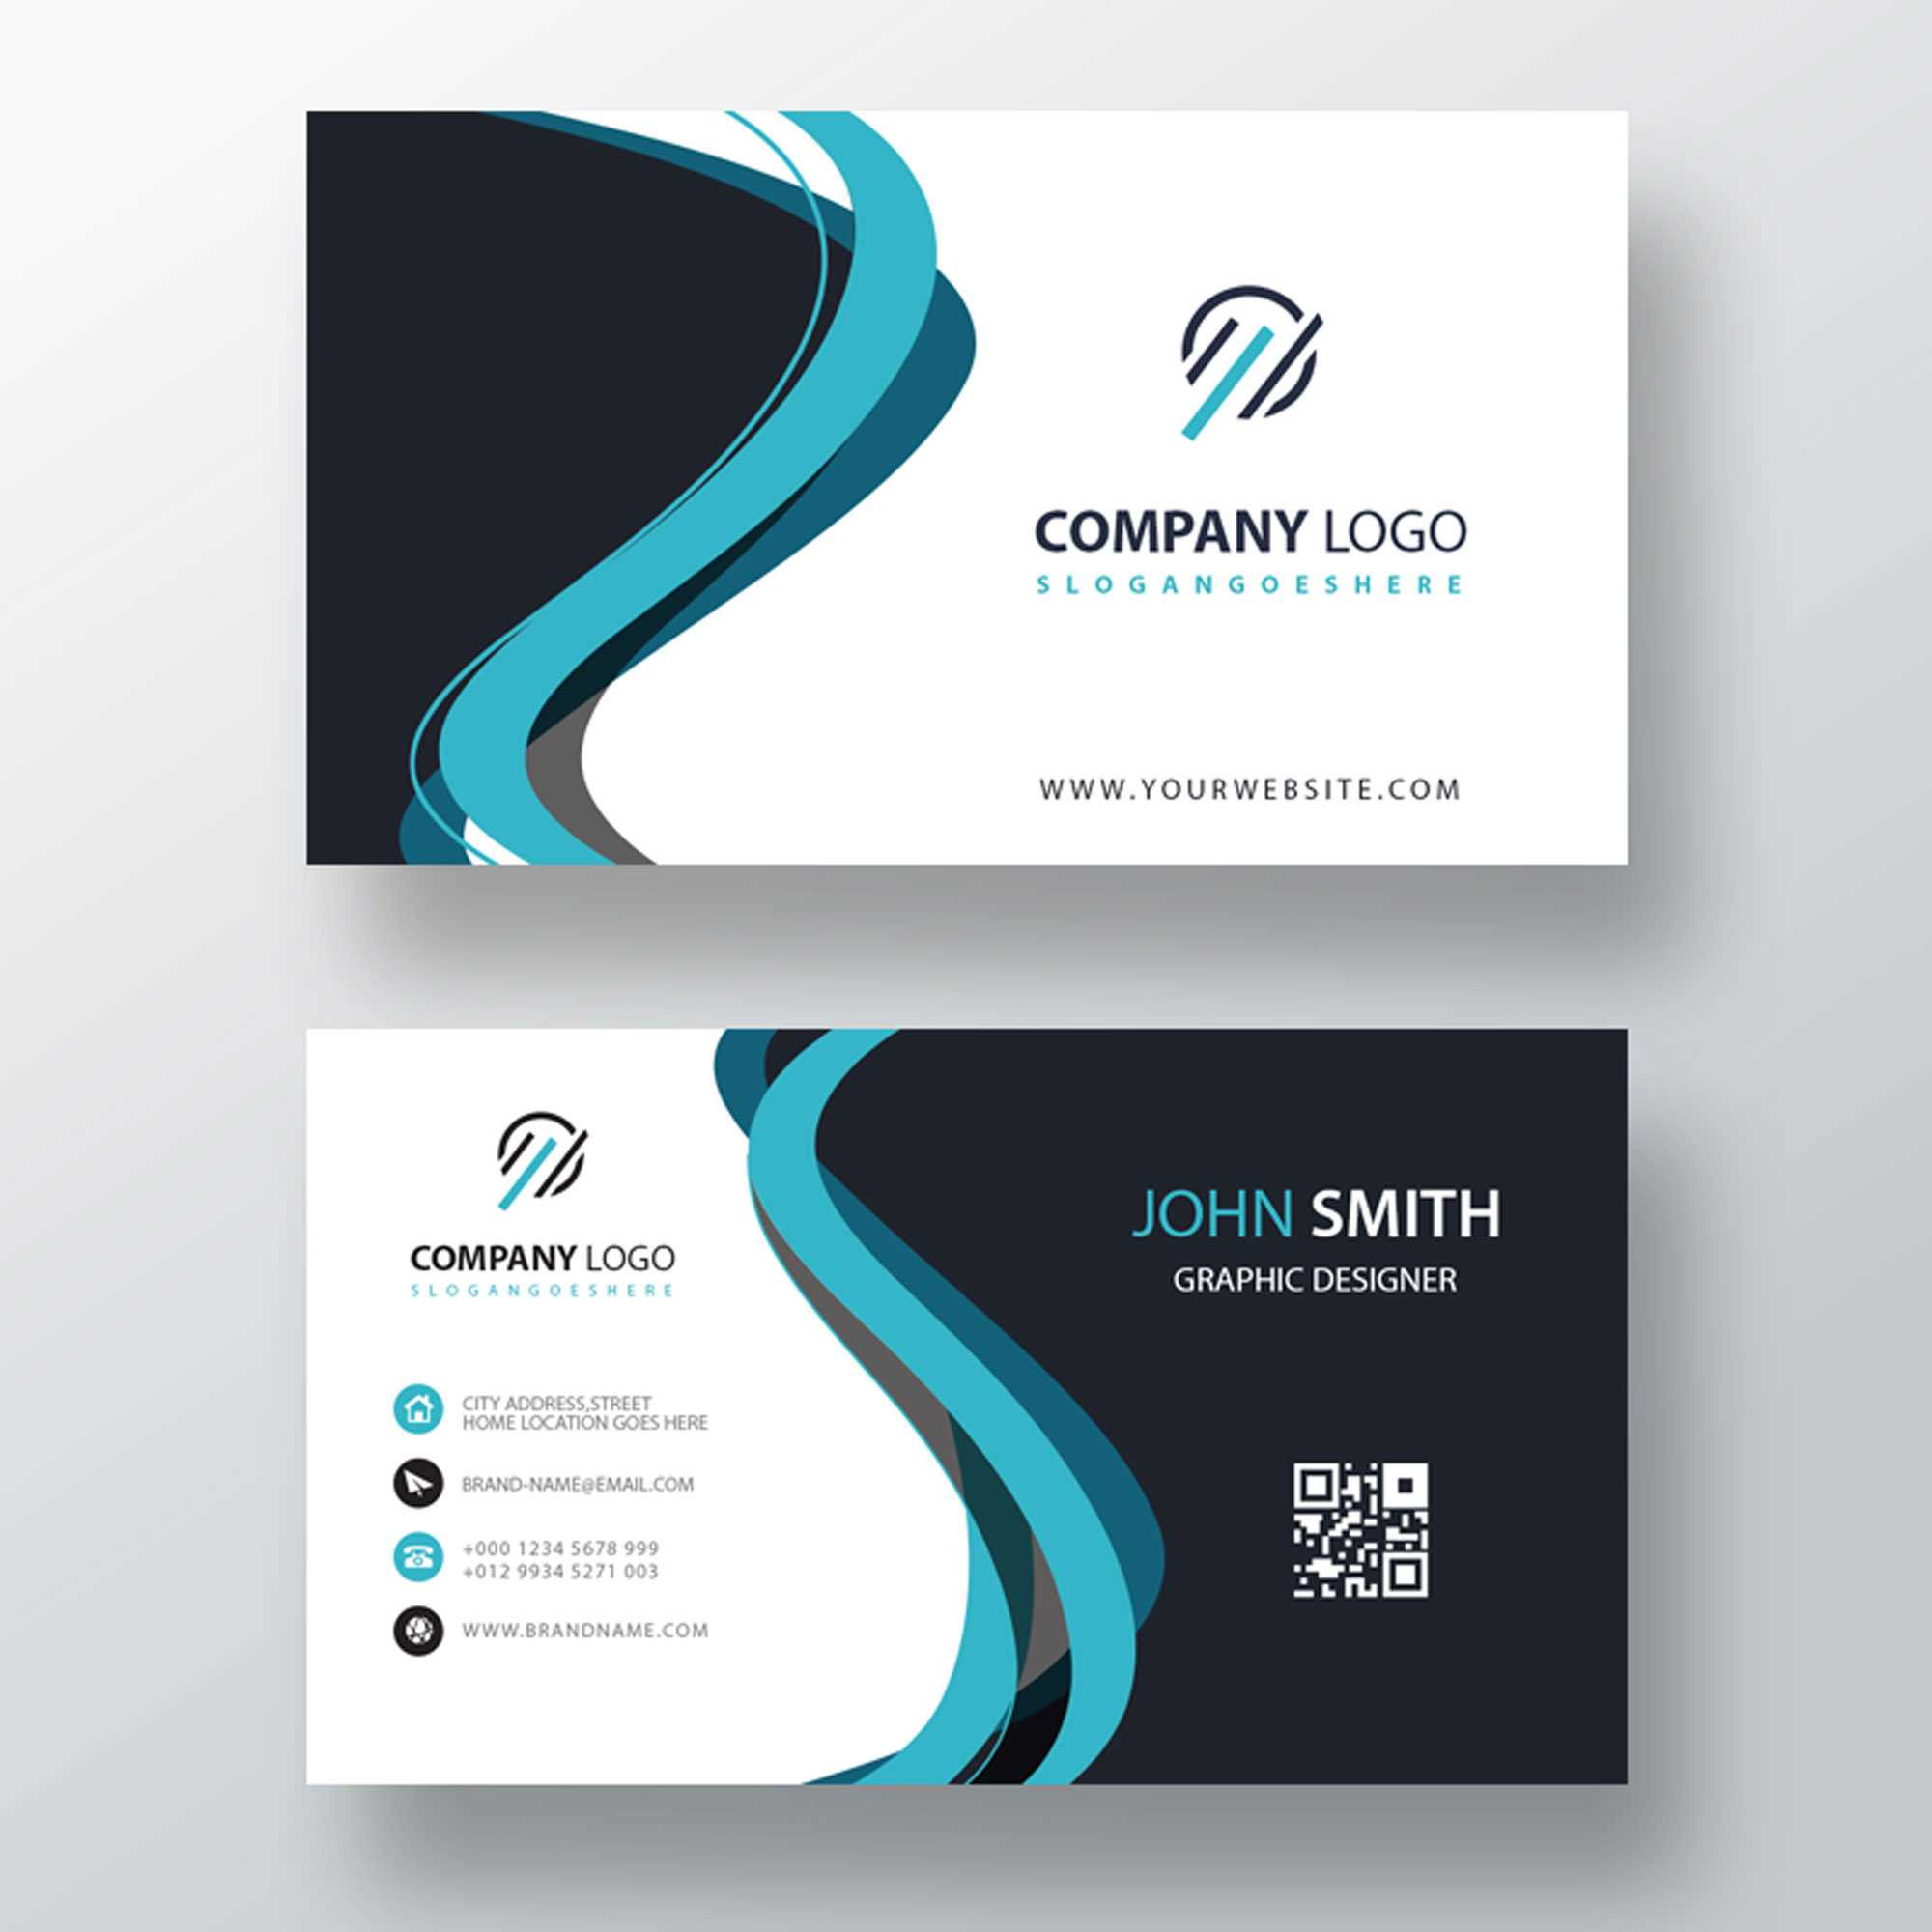 Classic Company Visiting Card Template | Free Customize Throughout Designer Visiting Cards Templates